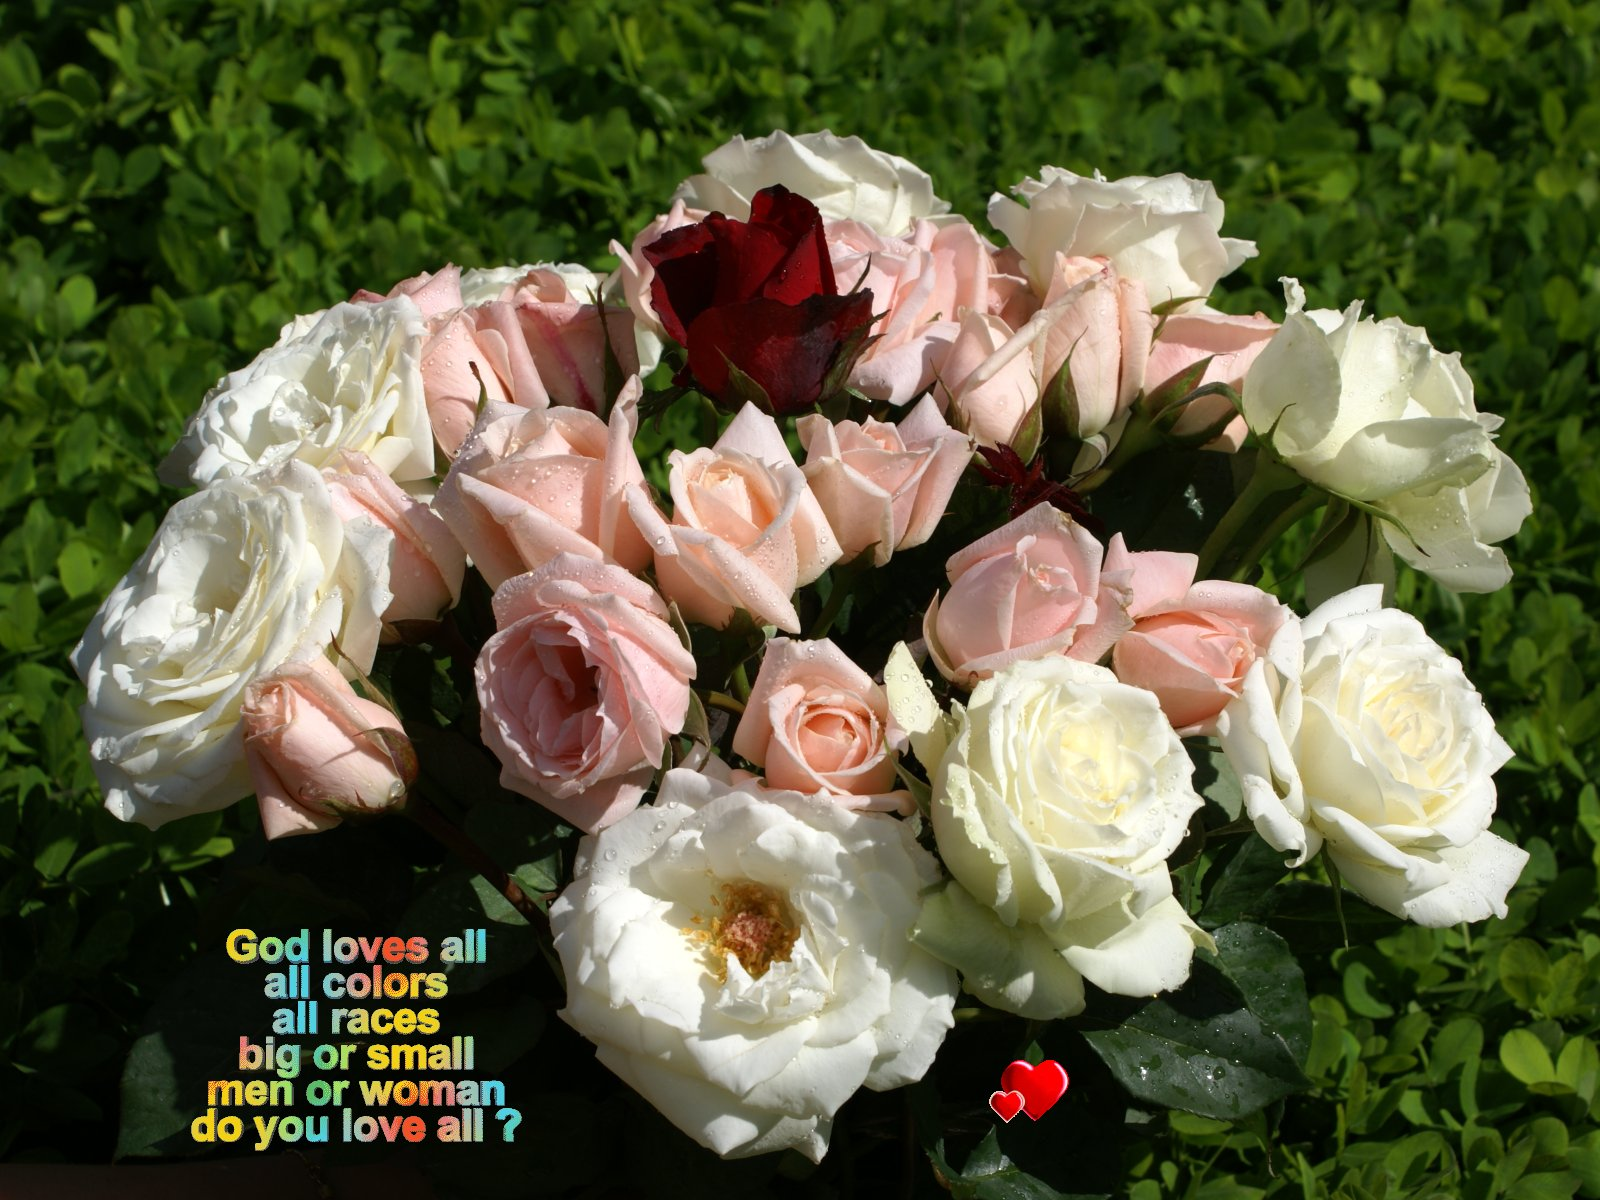 god wallpaper god loves all all colors all races big or small men or 1600x1200